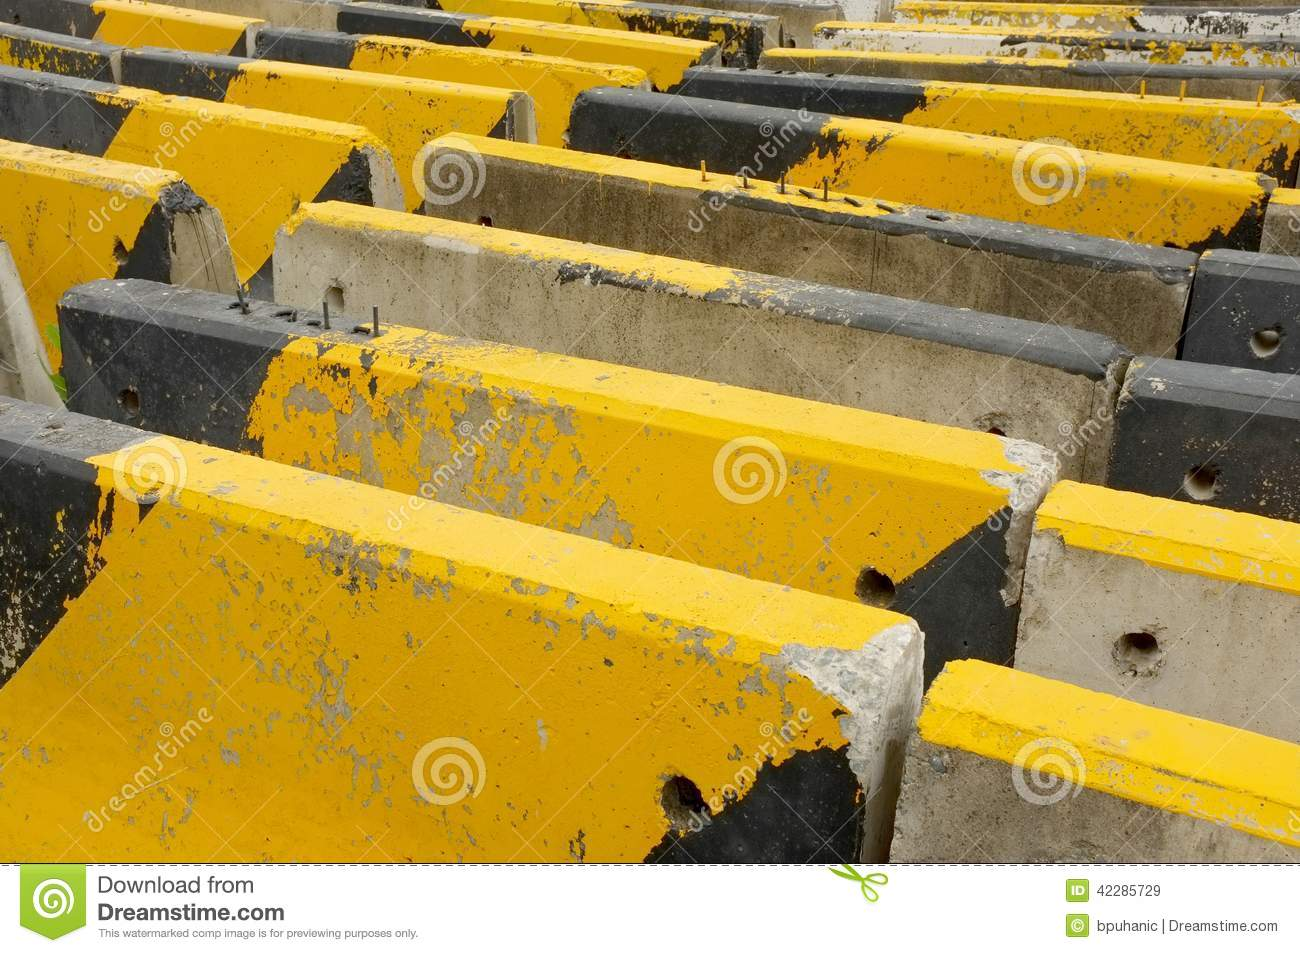 Black and yellow concrete road barriers or blocks